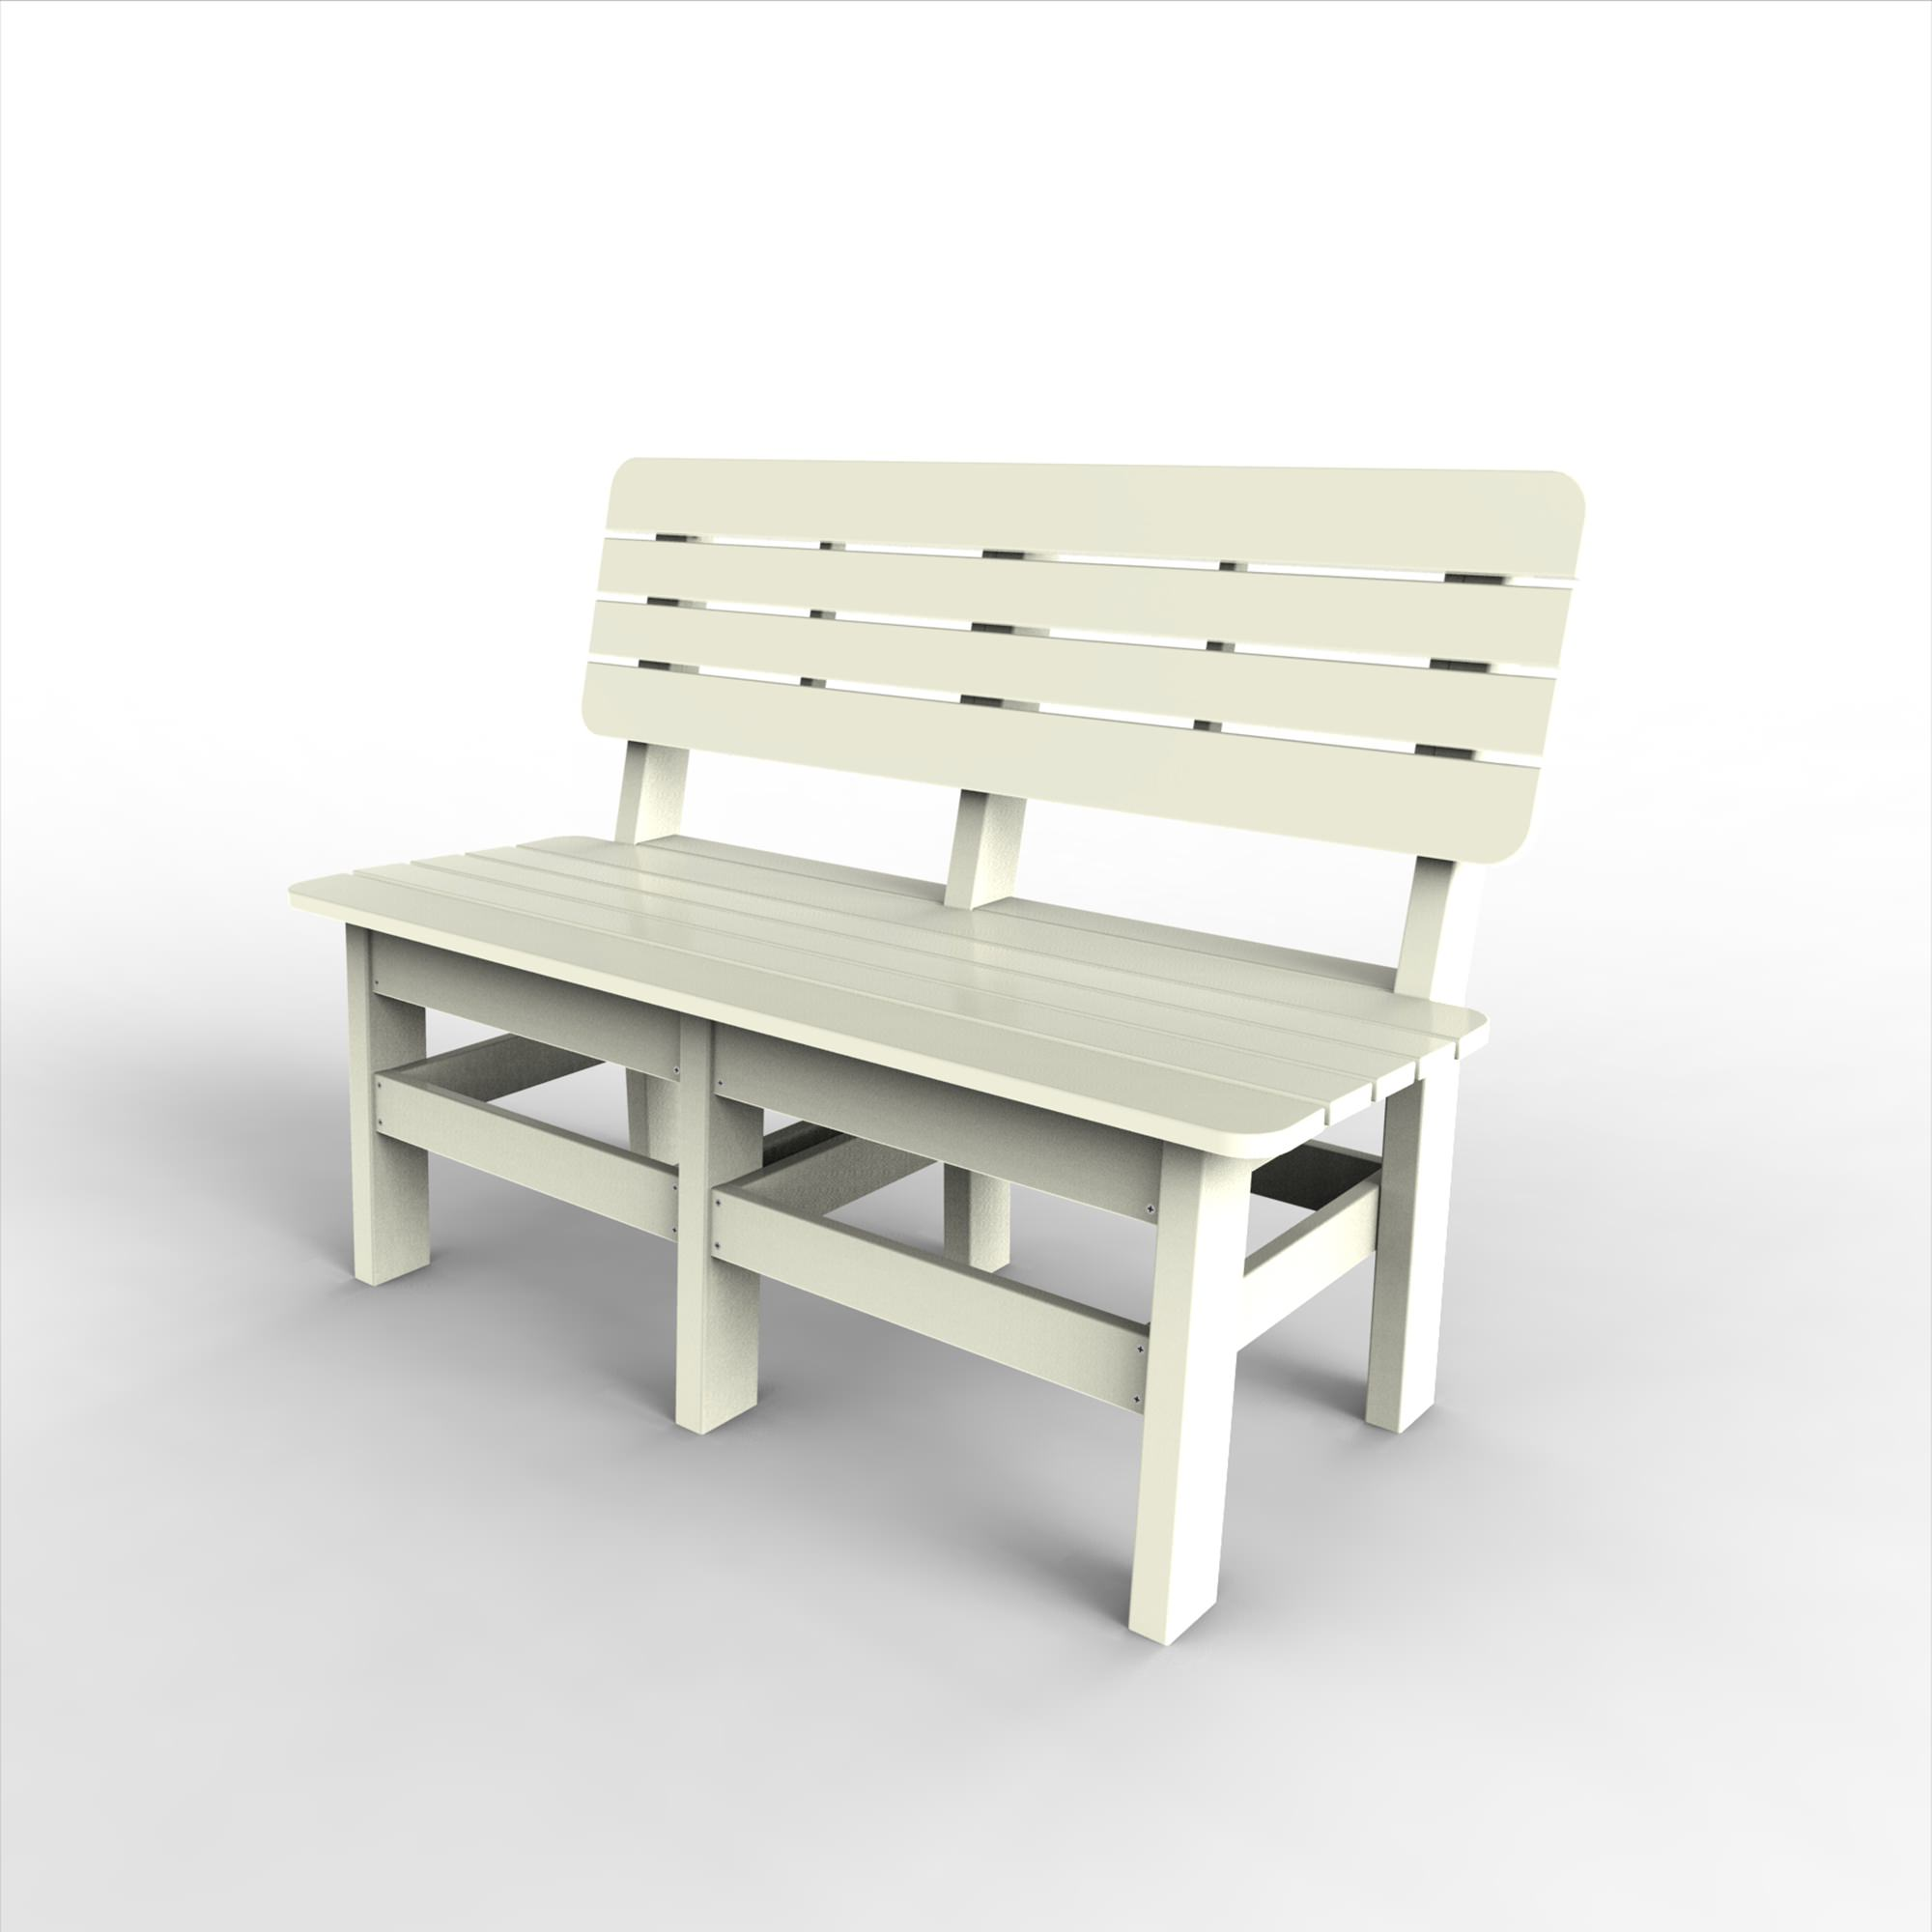 48in Country Bench By Malibu Dfohome